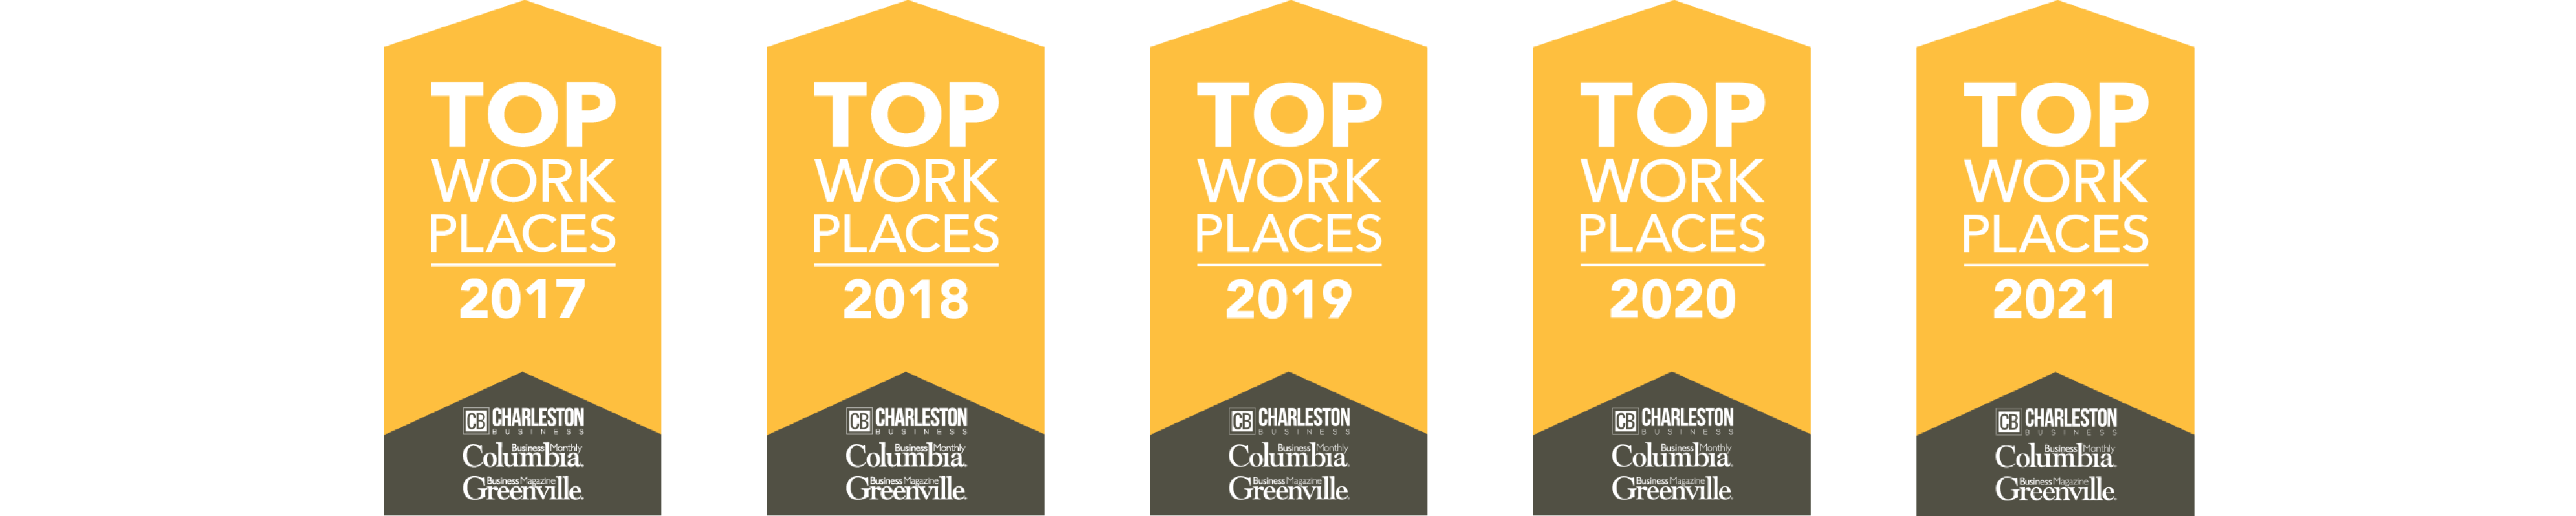 awards-top-workplace-01